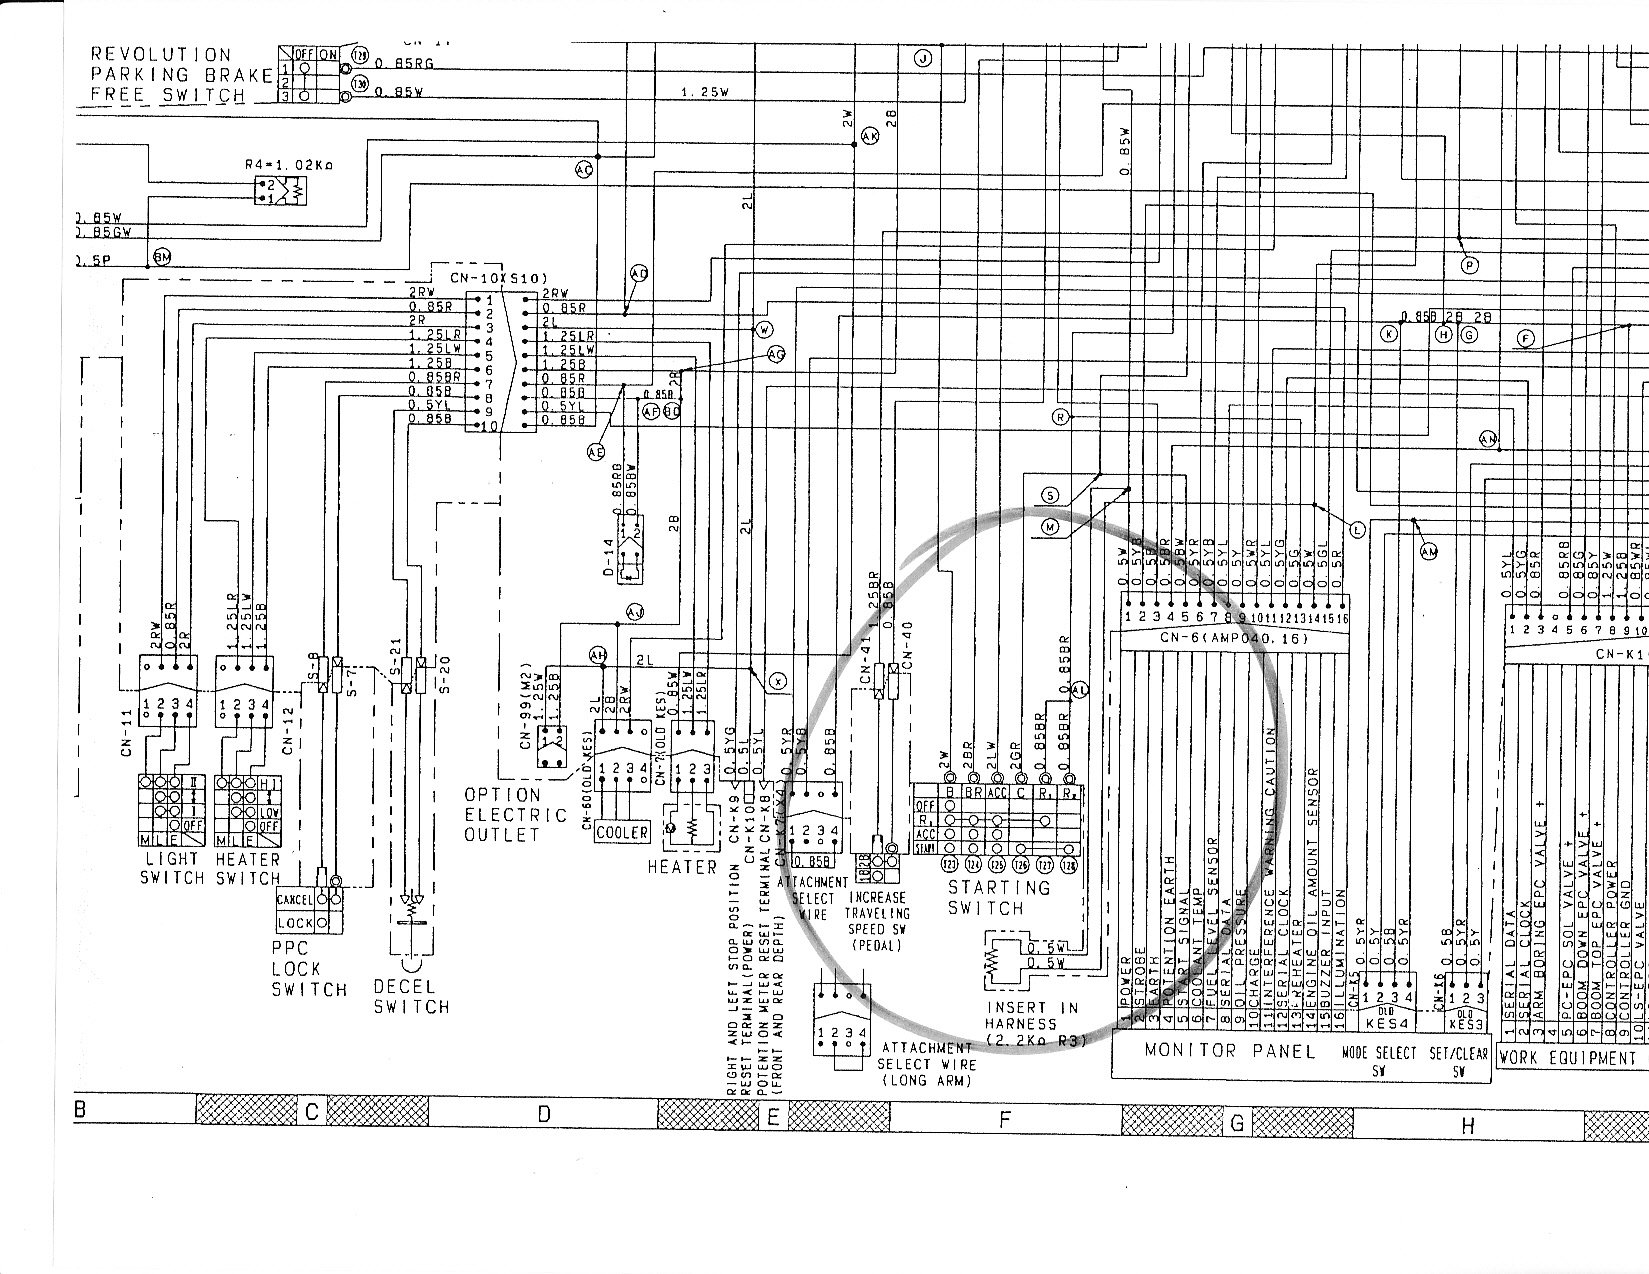 free construction equipment wiring schematics free wiring schematics i have a komatsu excavator pc128uu-1 i'm looking for the ...